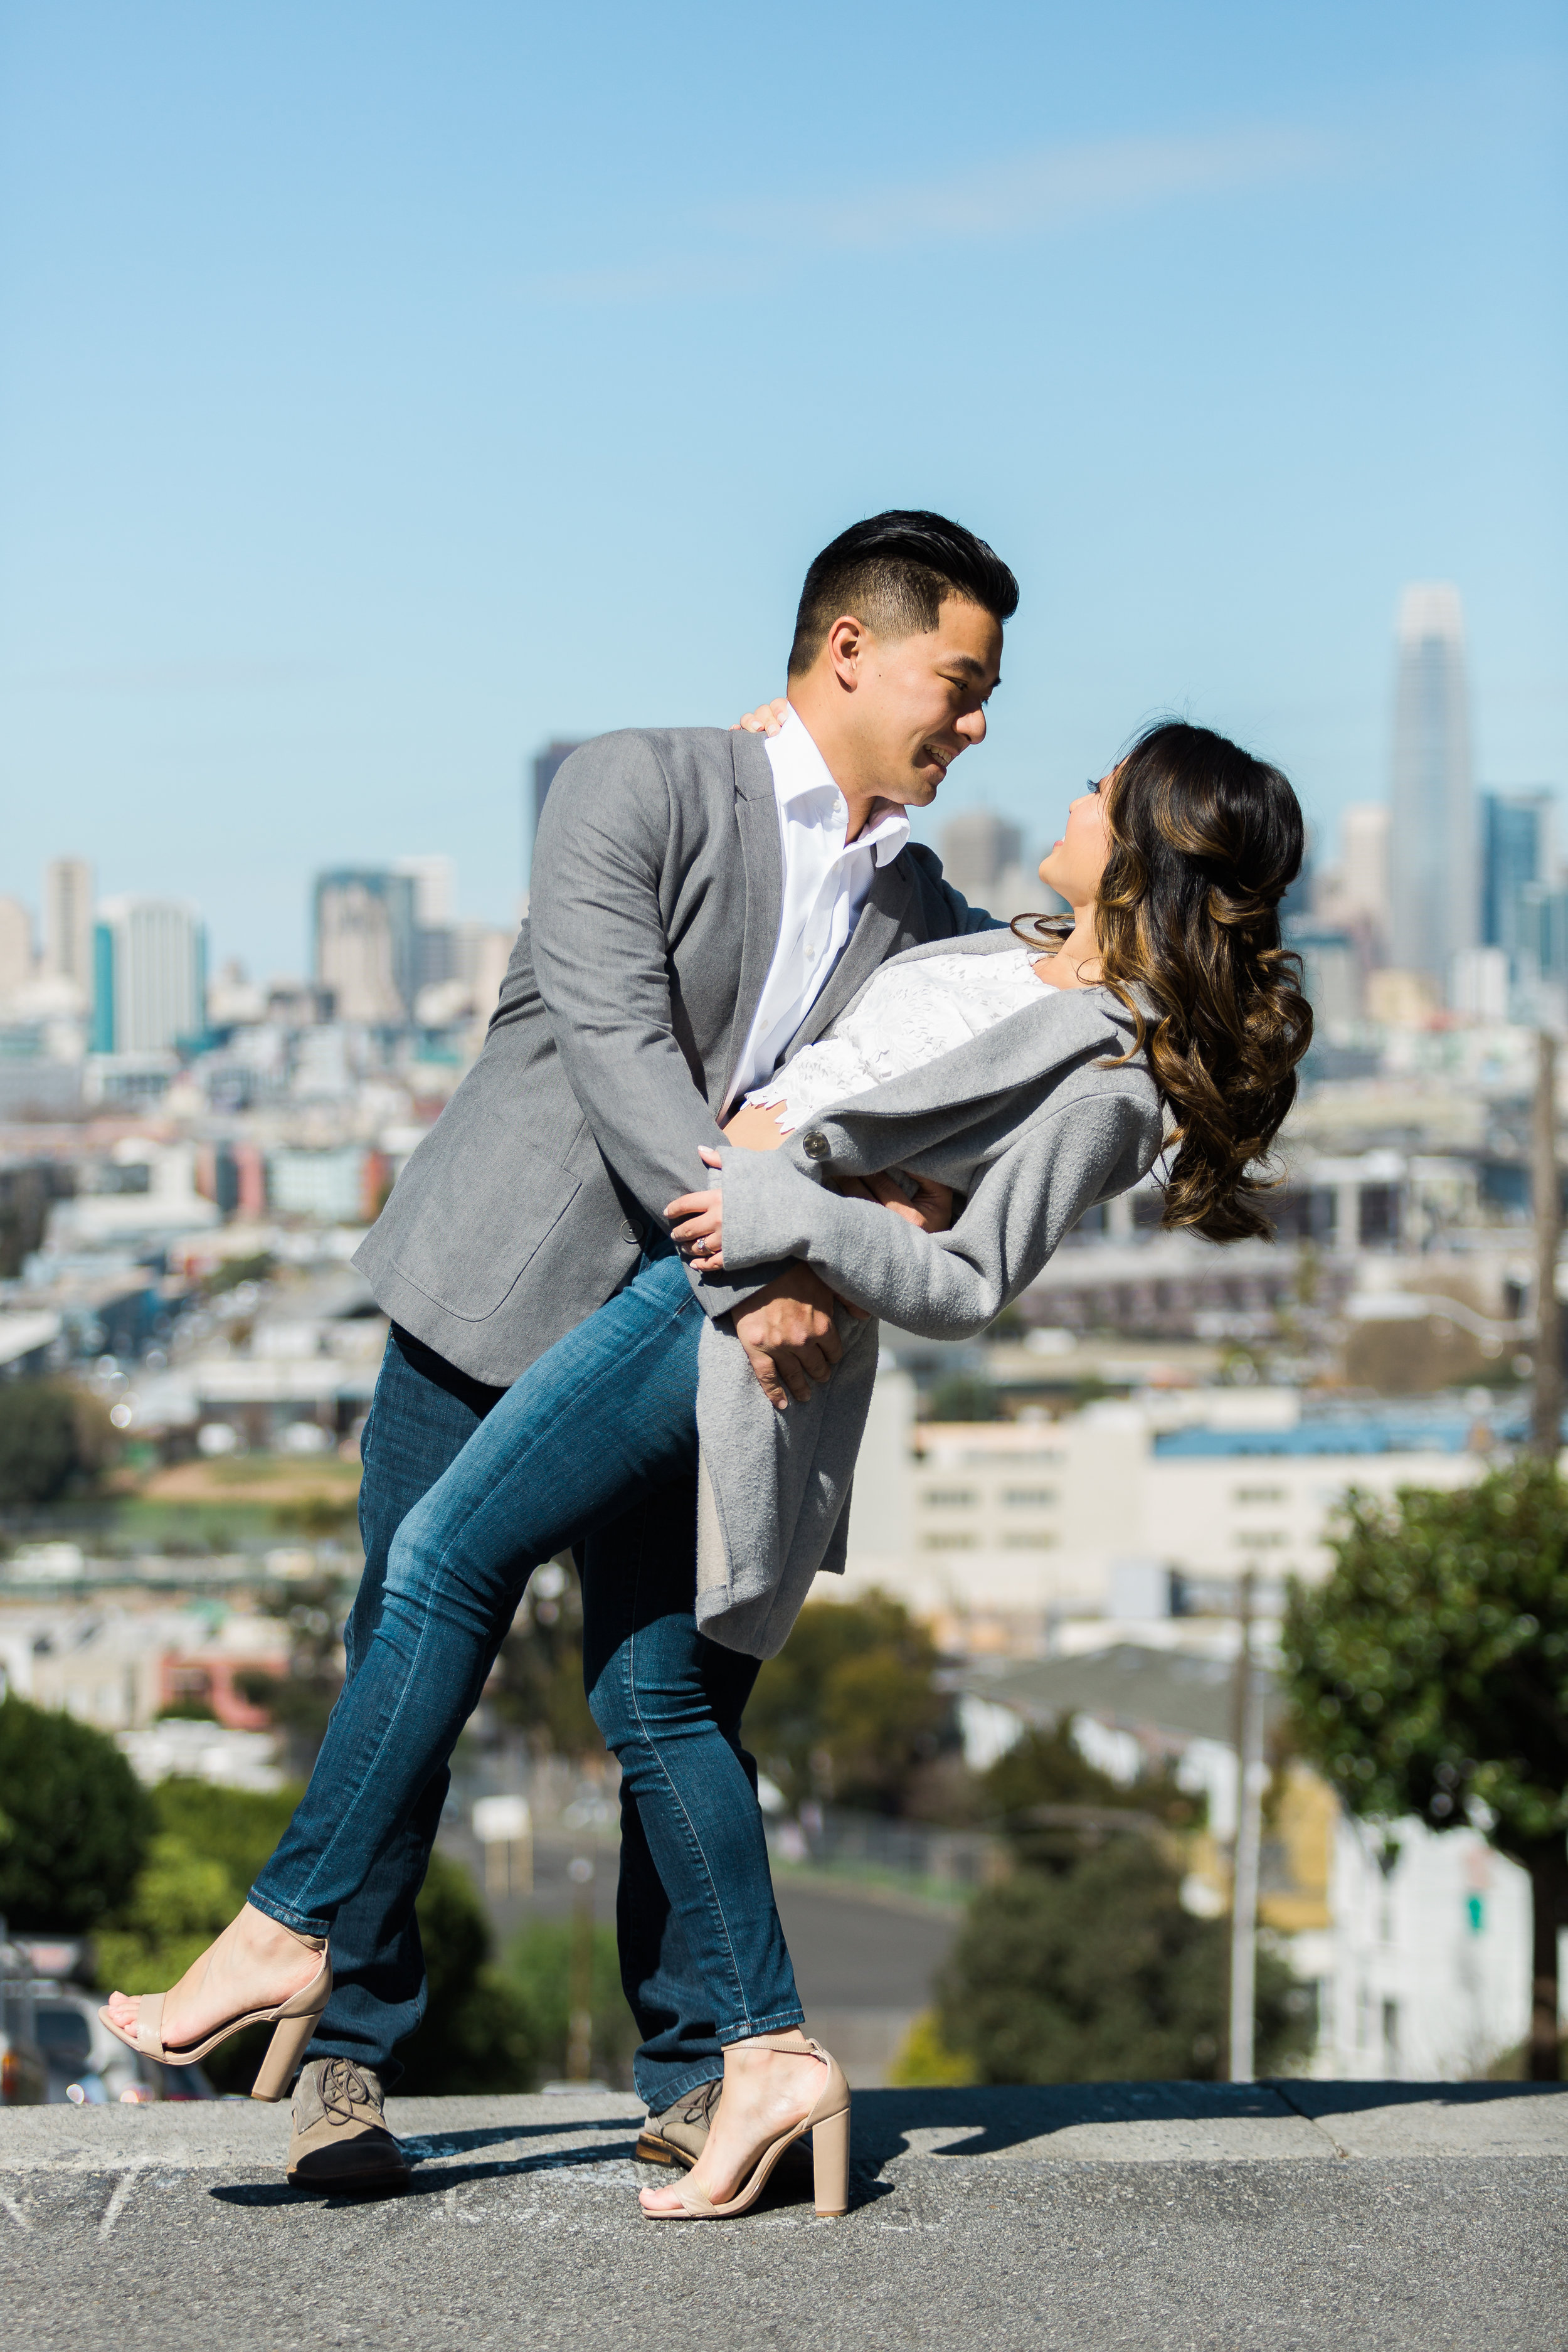 San-Francisco-Engagement-Session-Tara-Nichole-Photo-3.jpg